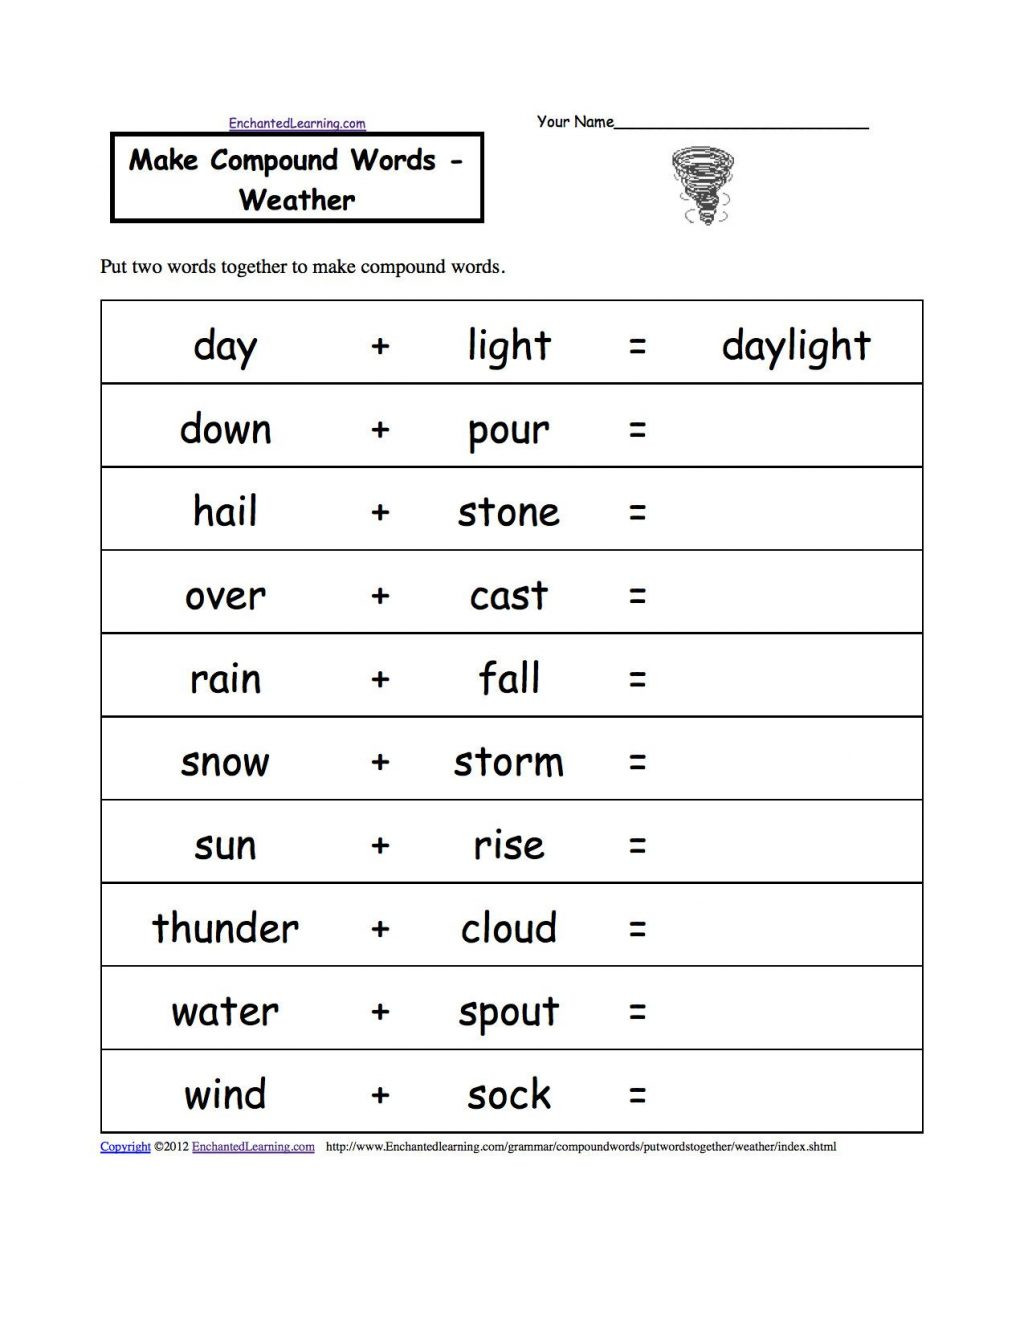 Second Grade Spelling Worksheets 2nd Grade Spelling Worksheets to You 2nd Grade Spelling